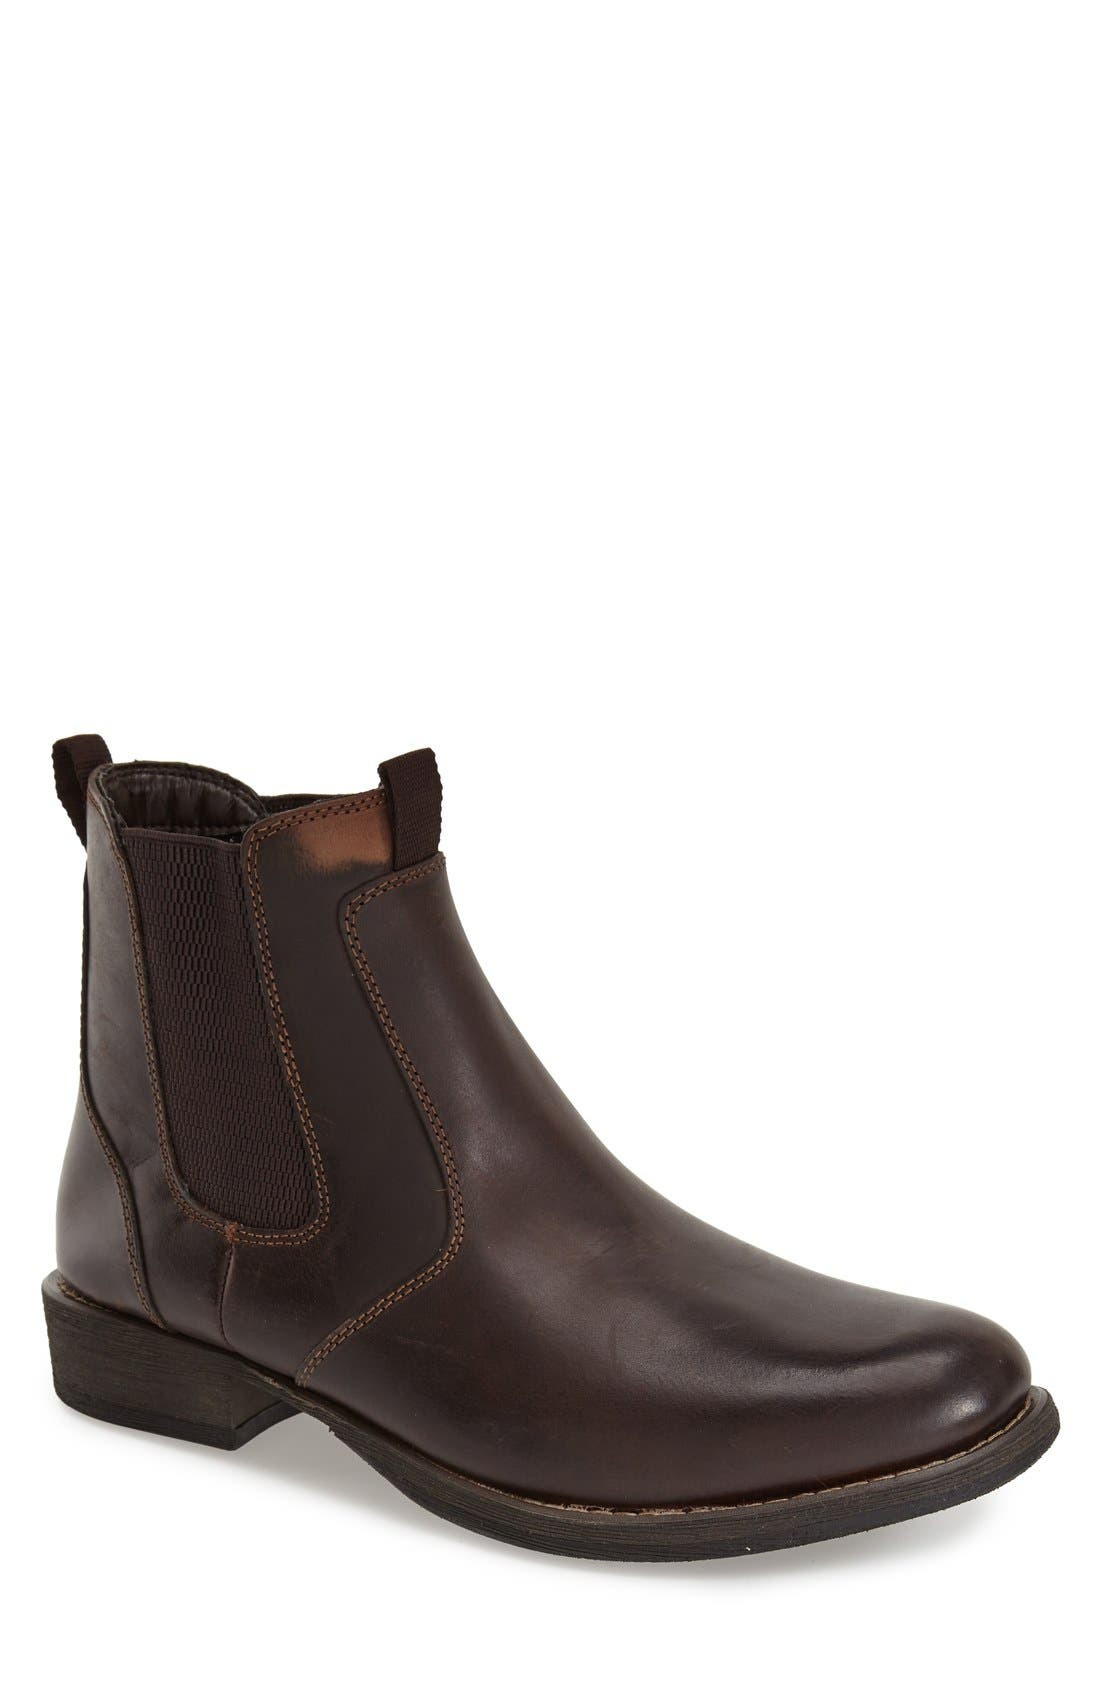 EASTLAND 'Daily Double' Chelsea Boot